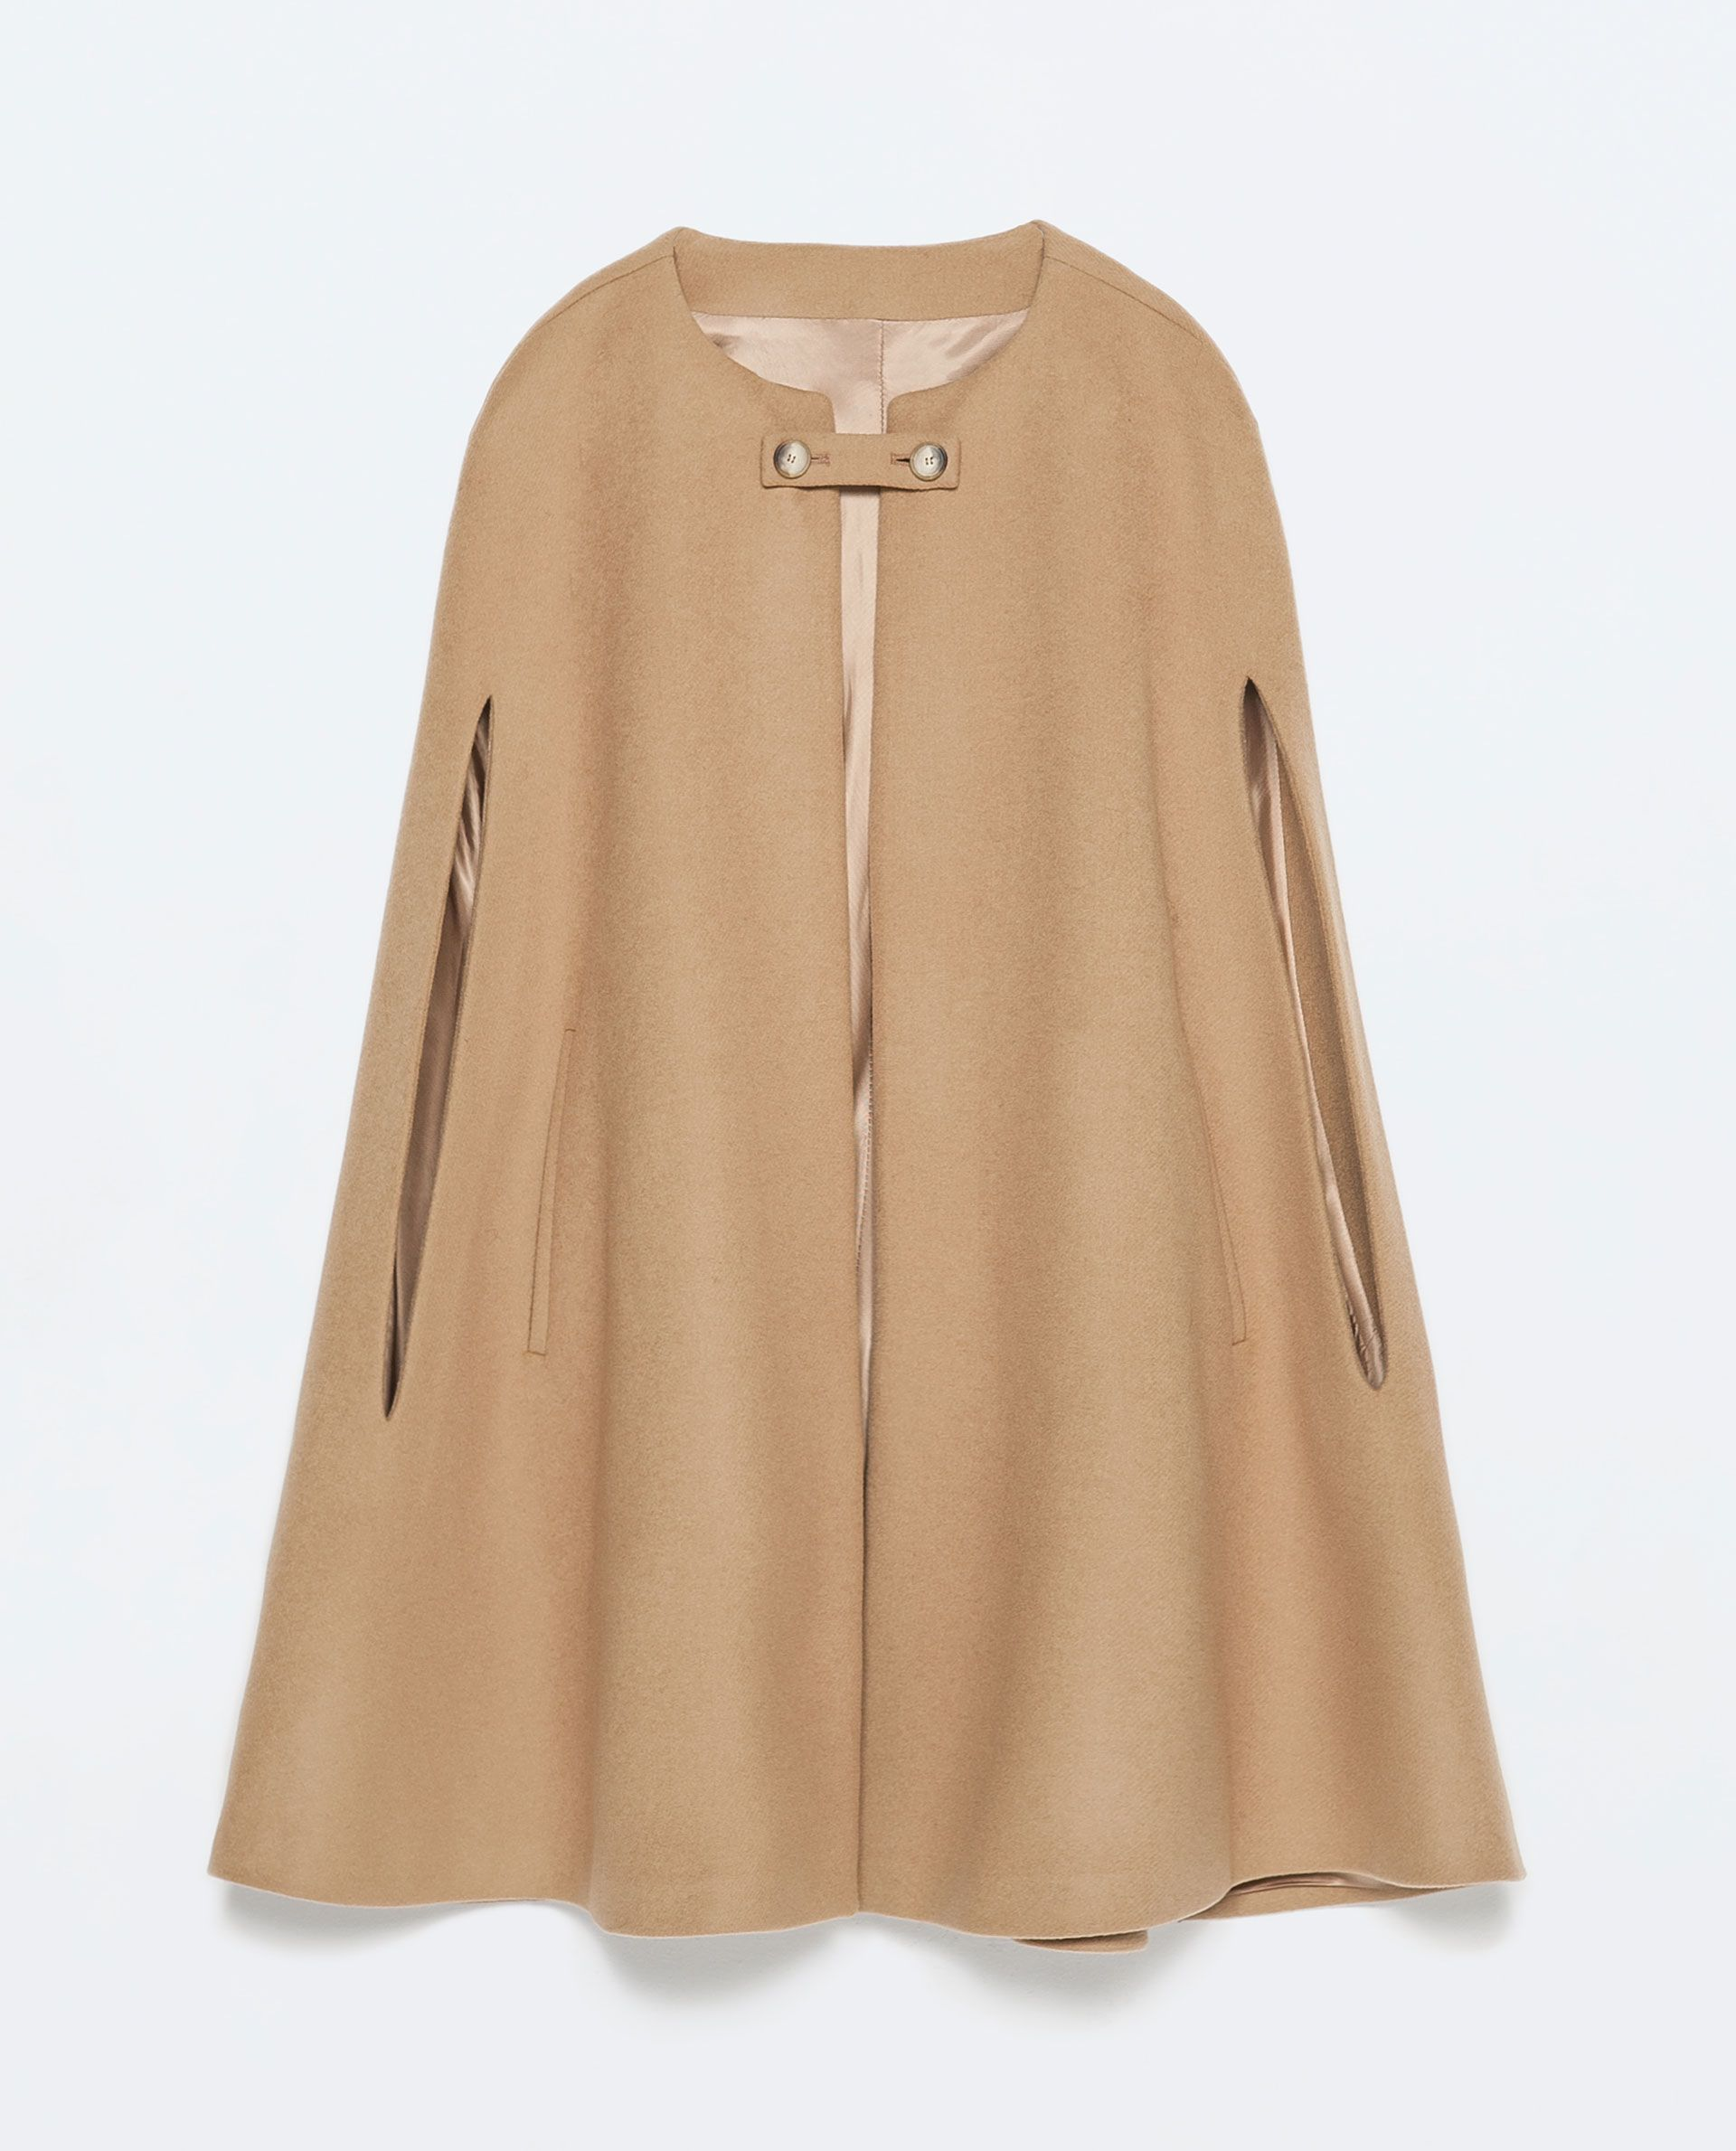 BUTTONED CAPE COAT - Outerwear - Woman - COLLECTION SS15 | ZARA United States $189 | Fall Style ...